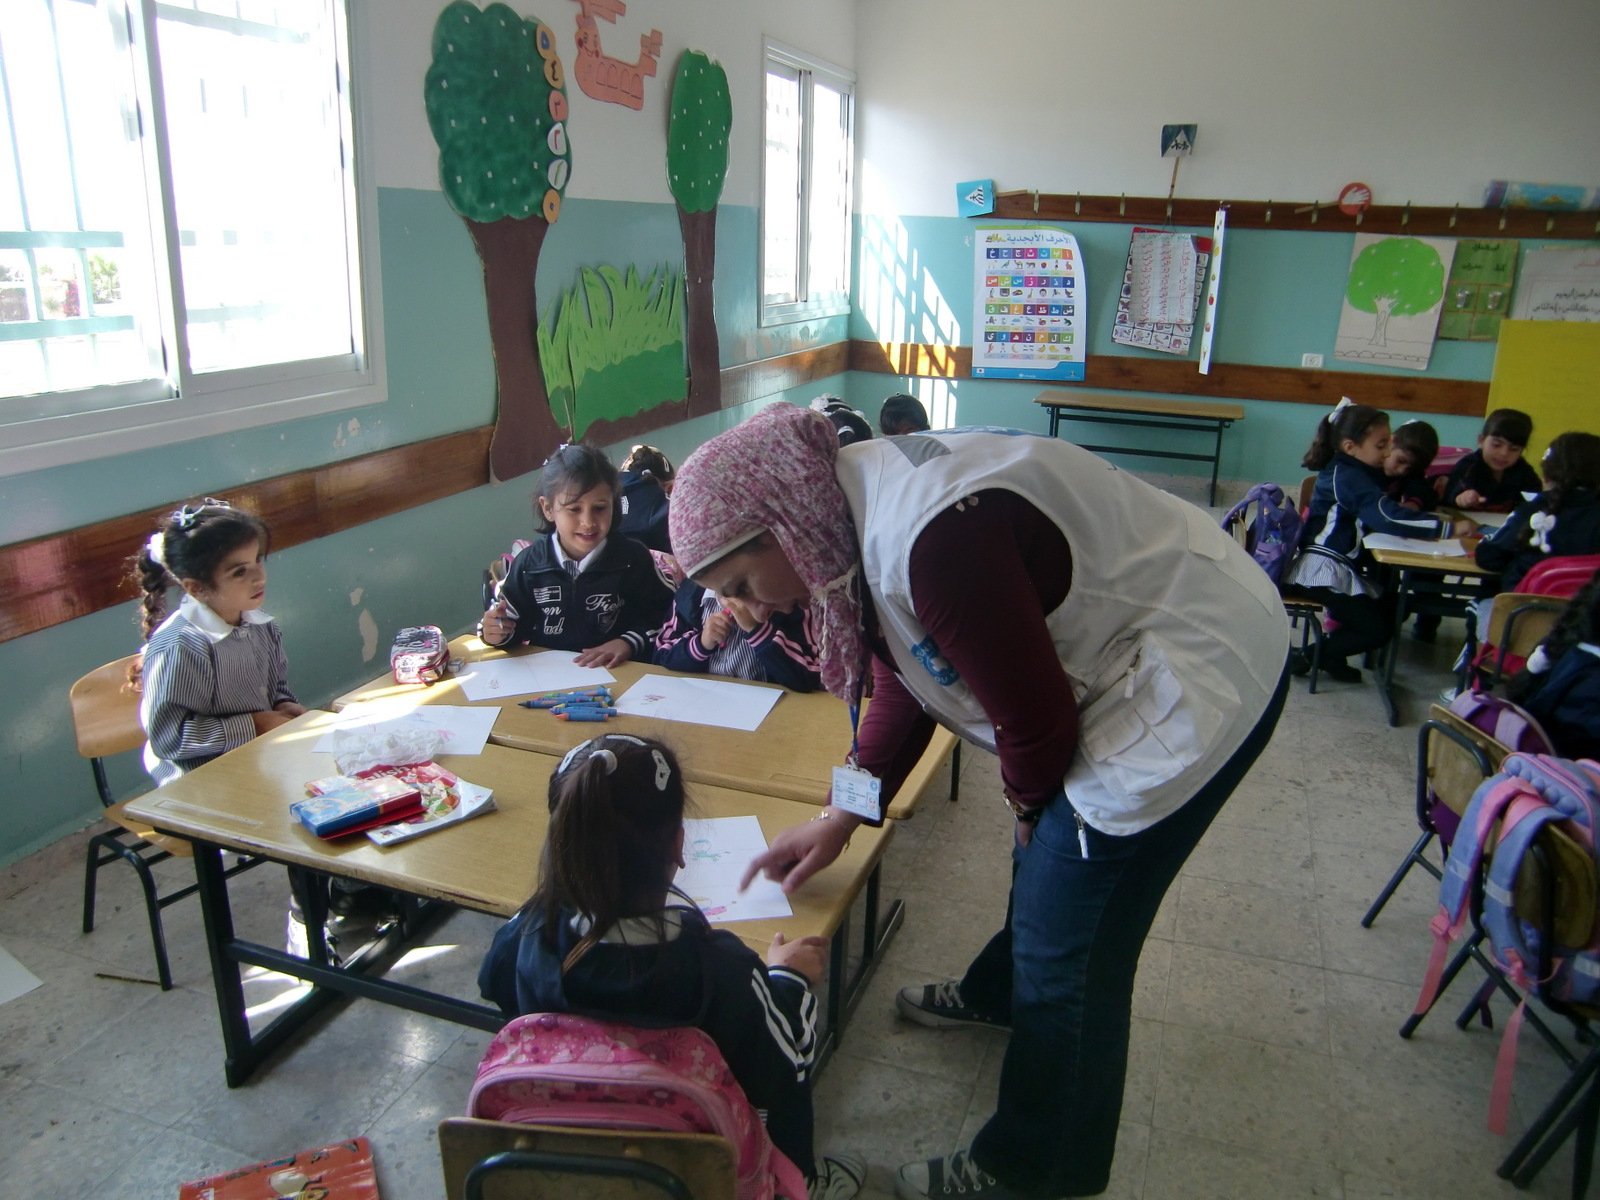 Palestine: Amid violence and uncertainty, create a safe space for children to express their feelings